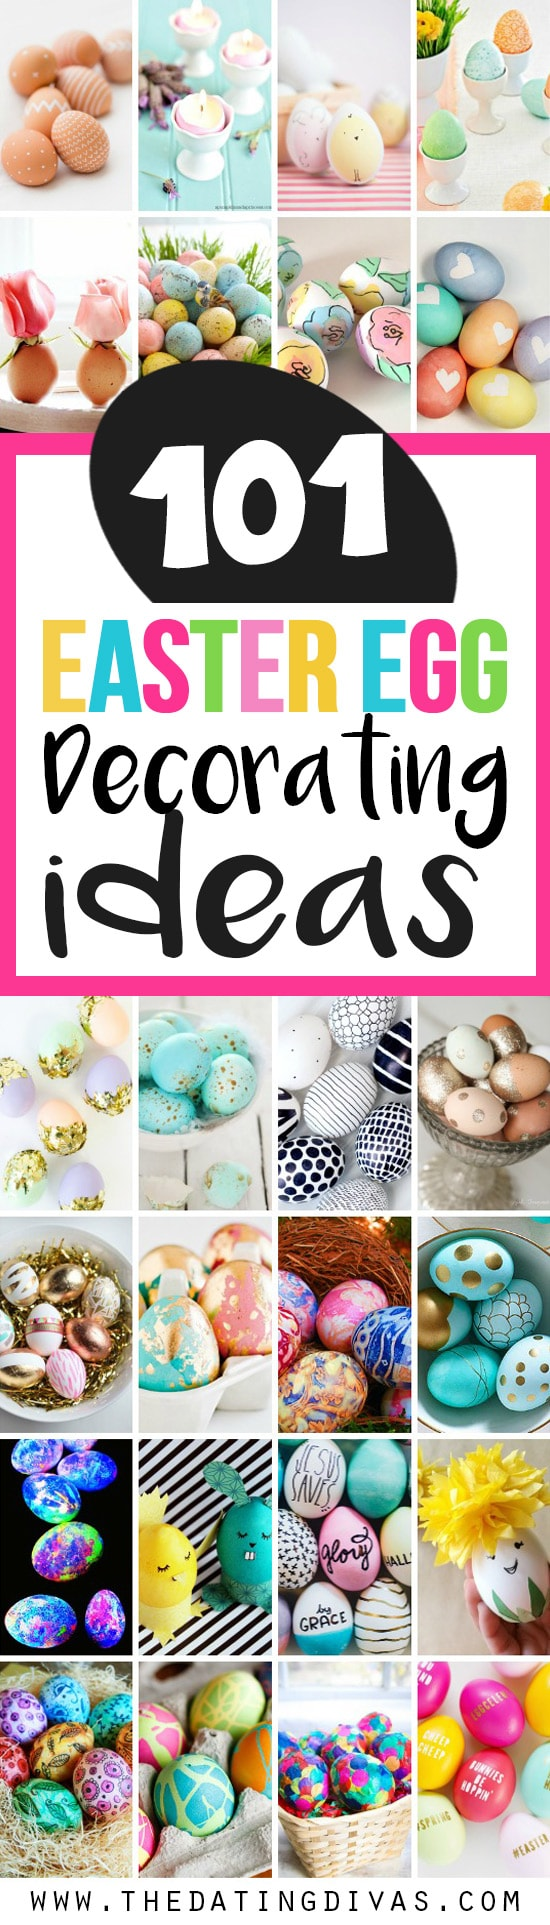 101 Creative Easter Egg Decorating Ideas from The Dating Divas